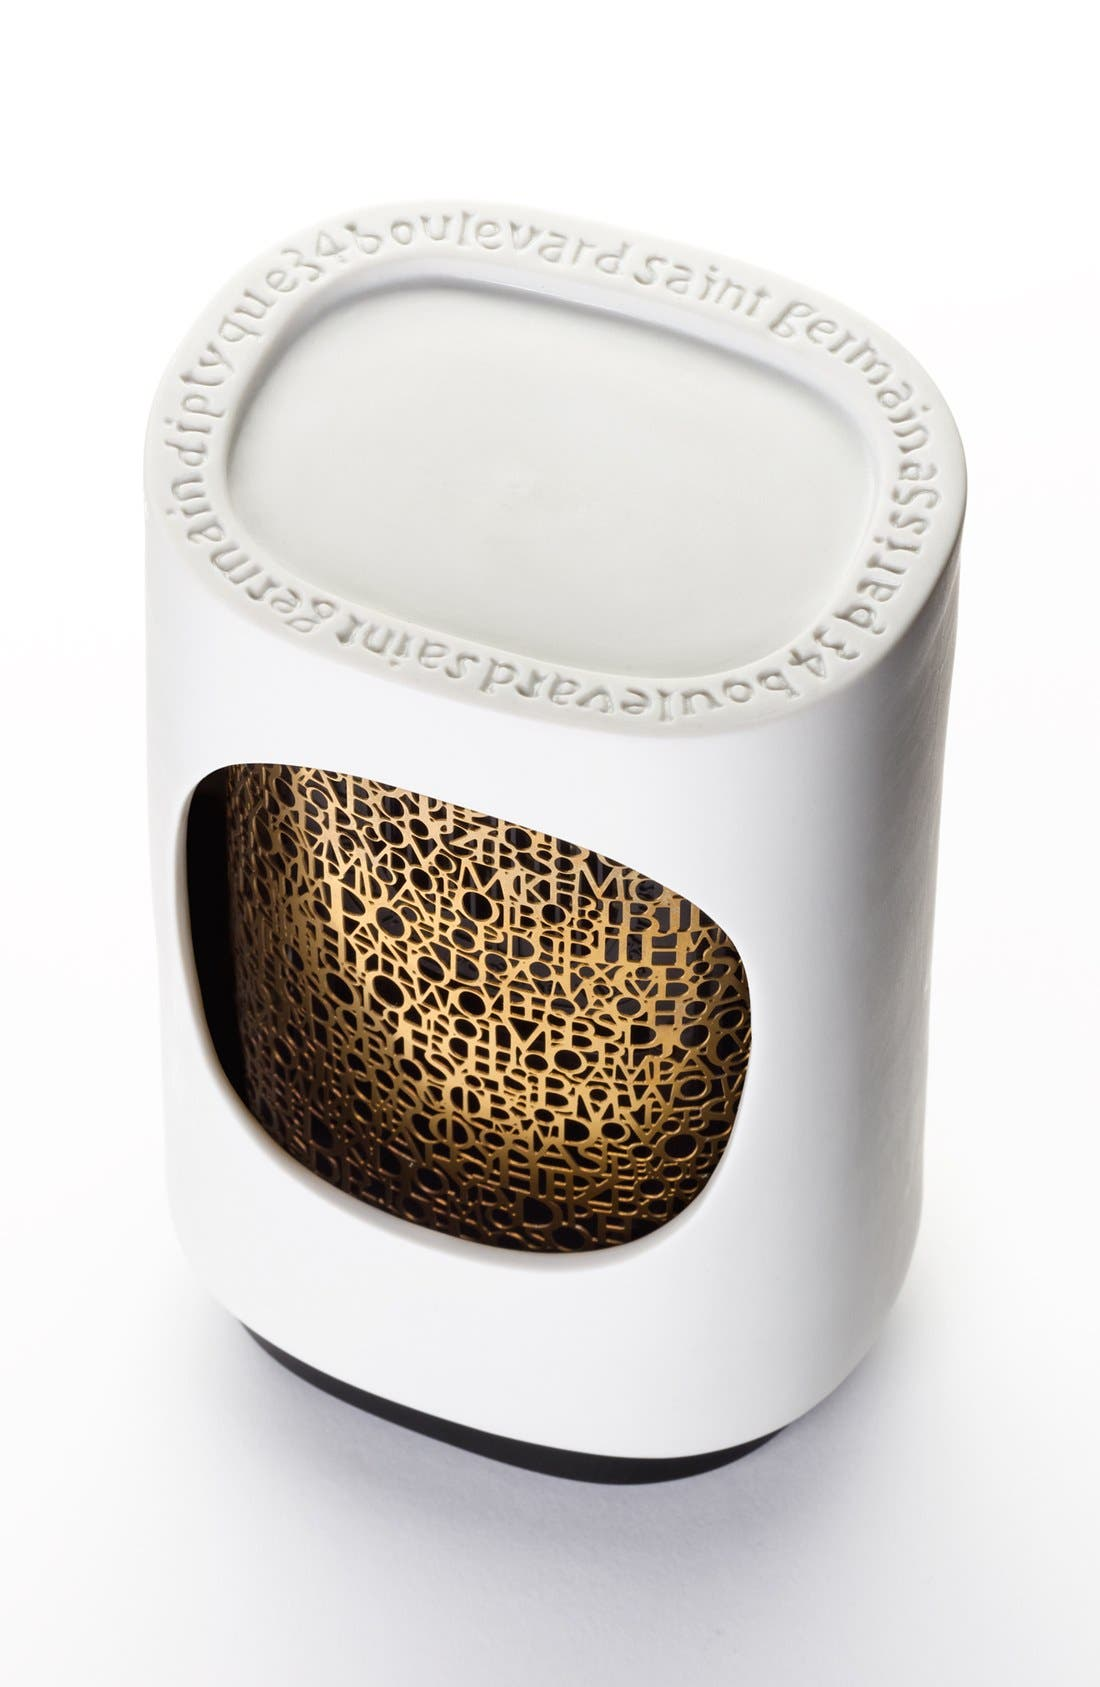 DIPTYQUE, Electric Diffuser, Alternate thumbnail 2, color, NO COLOR